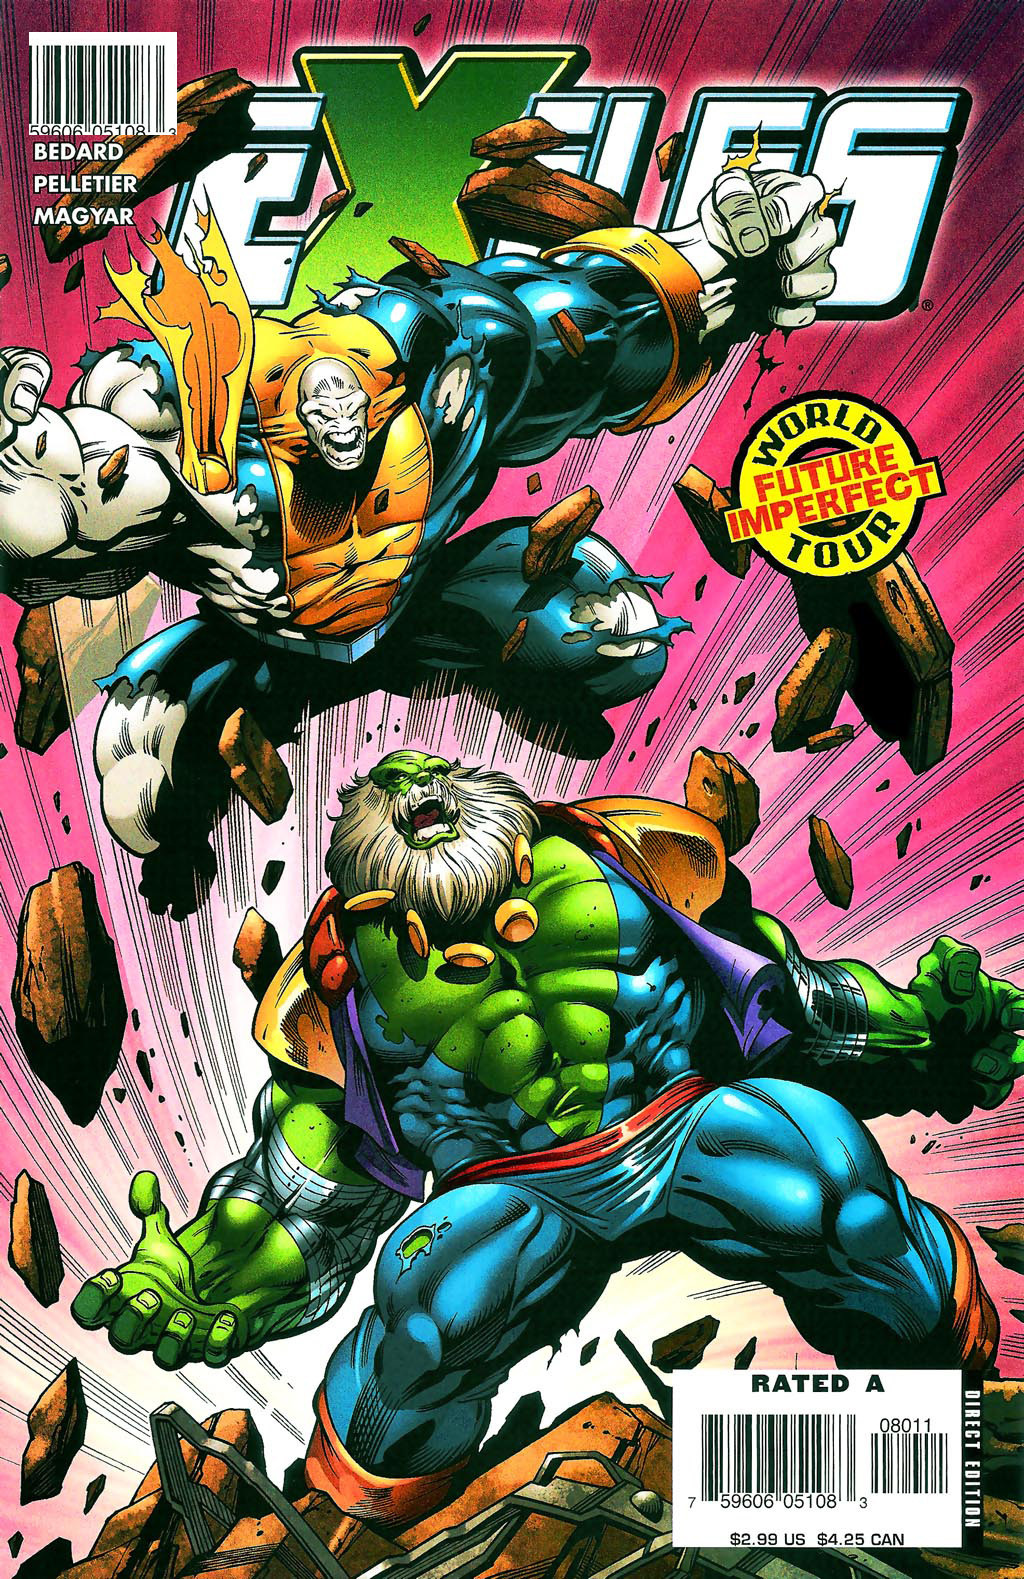 marvel exiles - get domain pic...